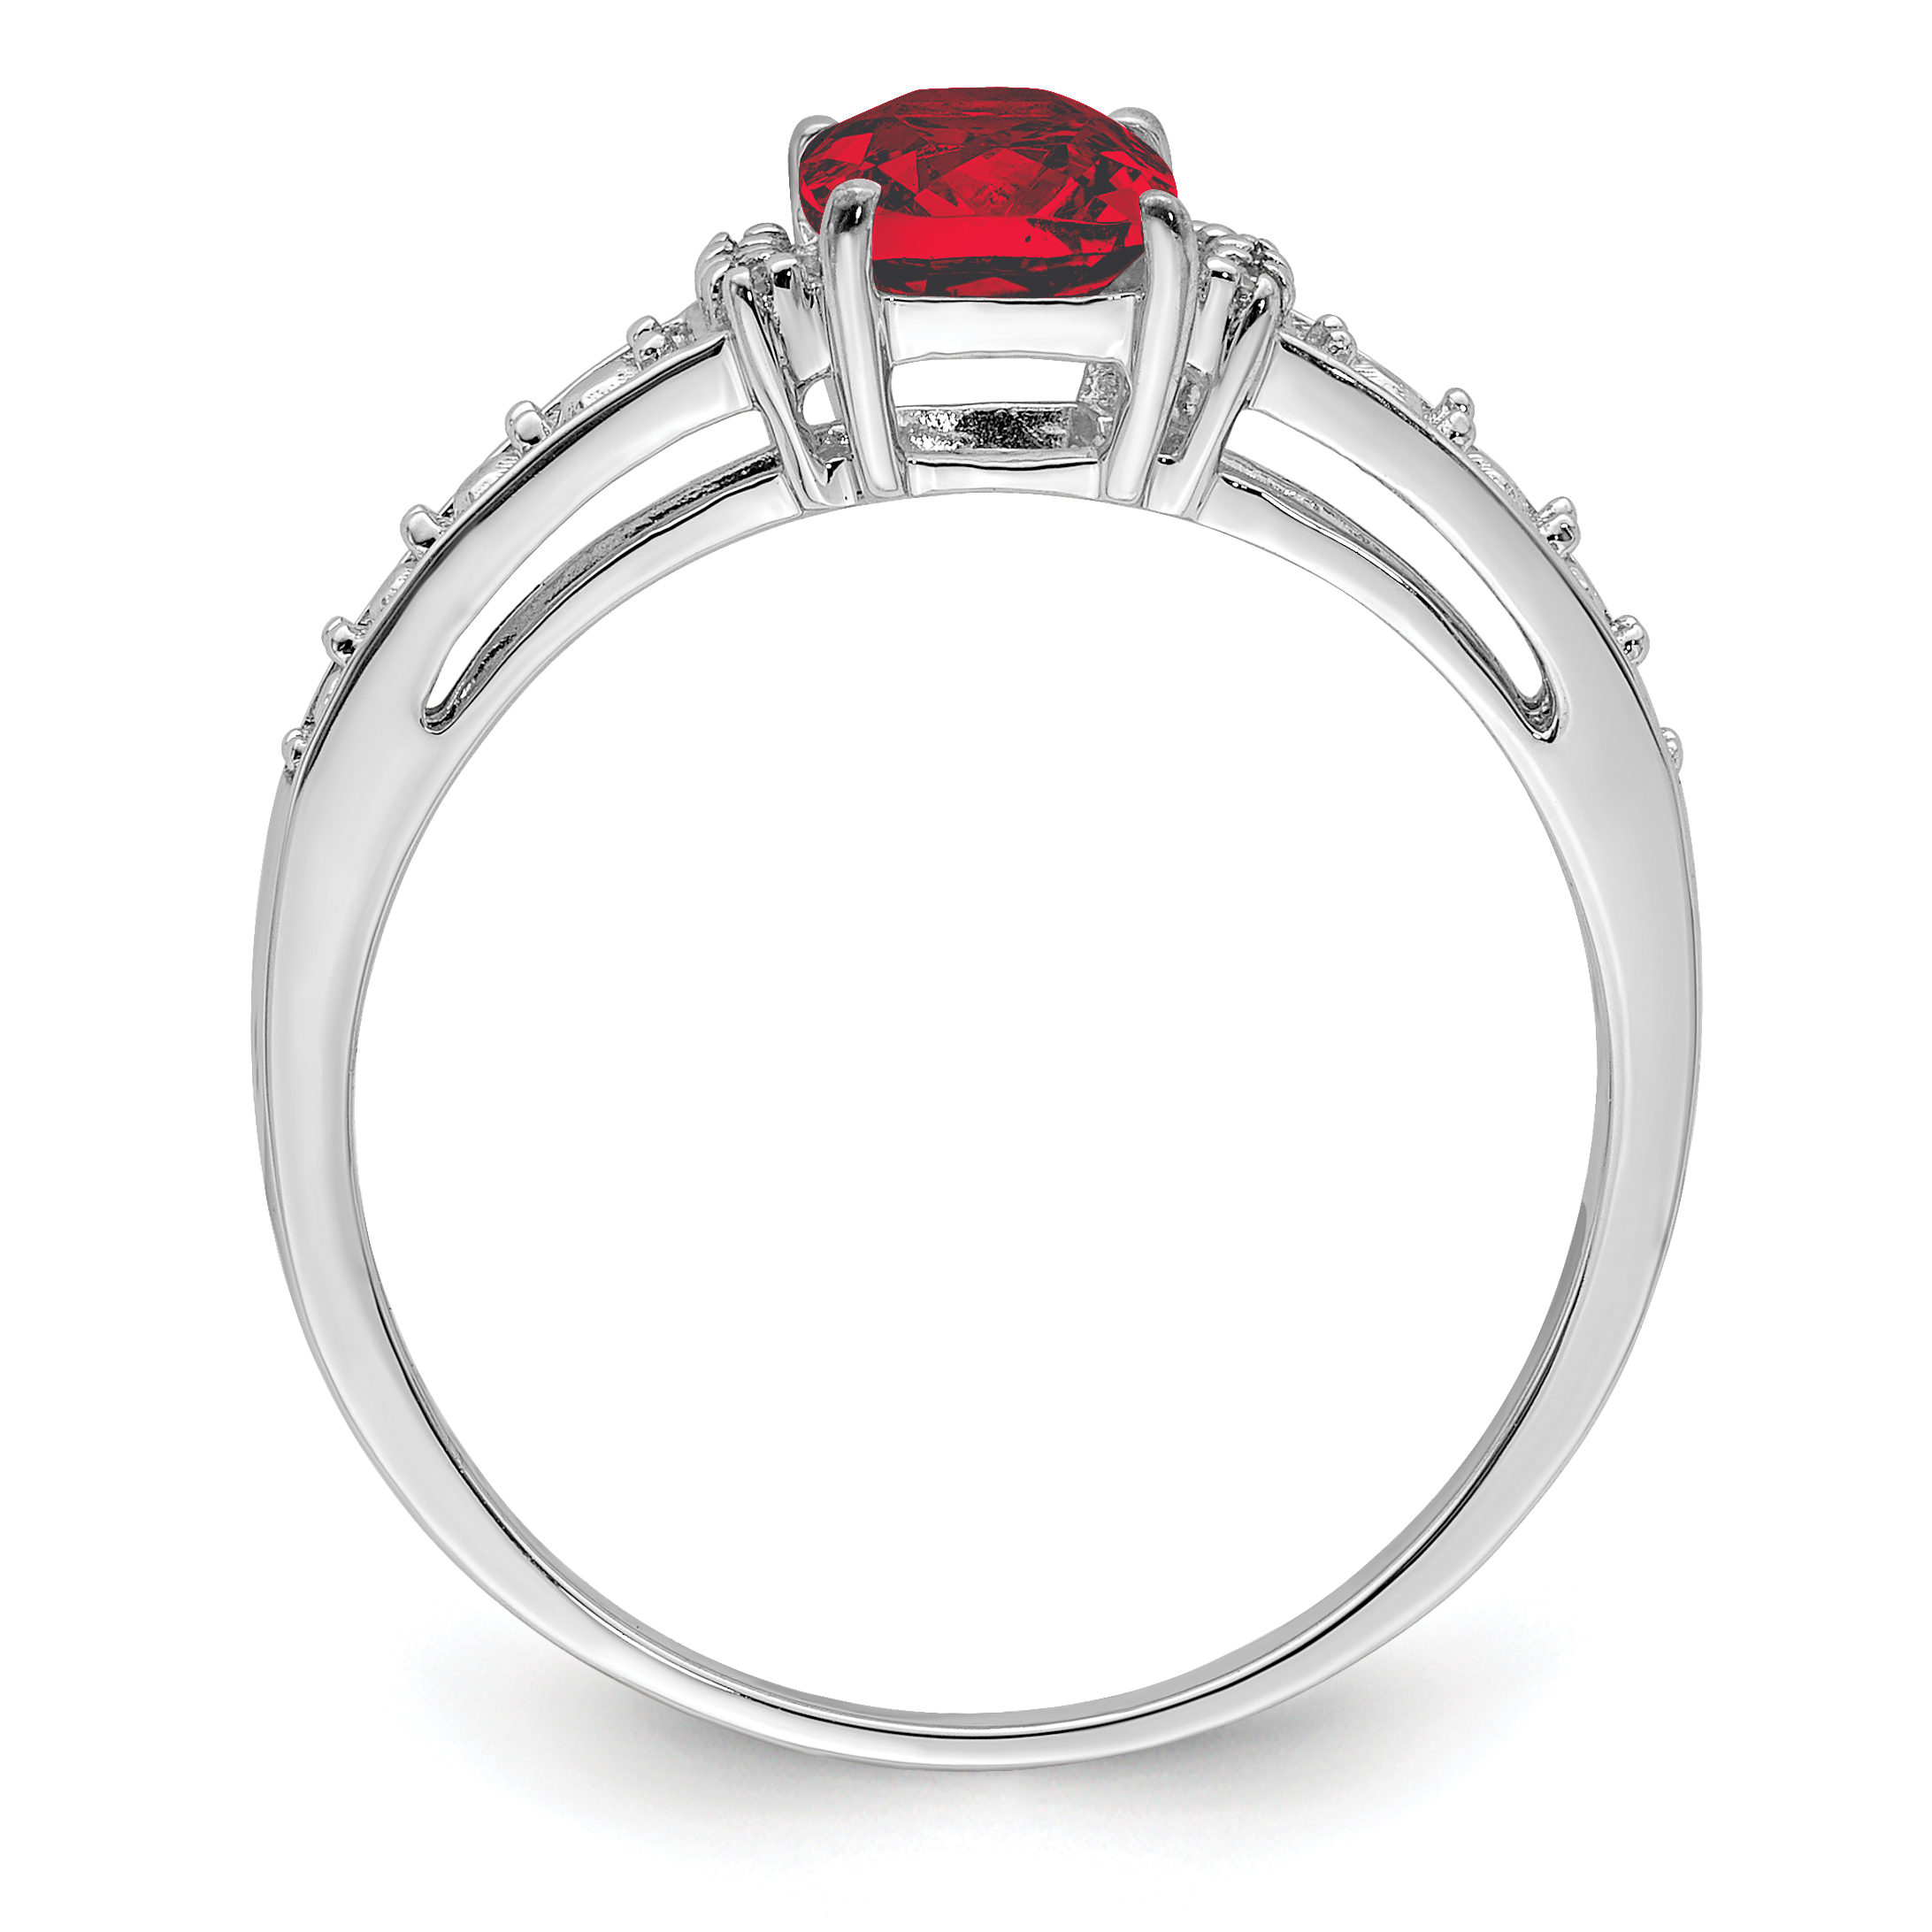 Size 6 Red Almandine Garnet Ring in Sterling Silver Garnet Cushion Ring with Twisted Band